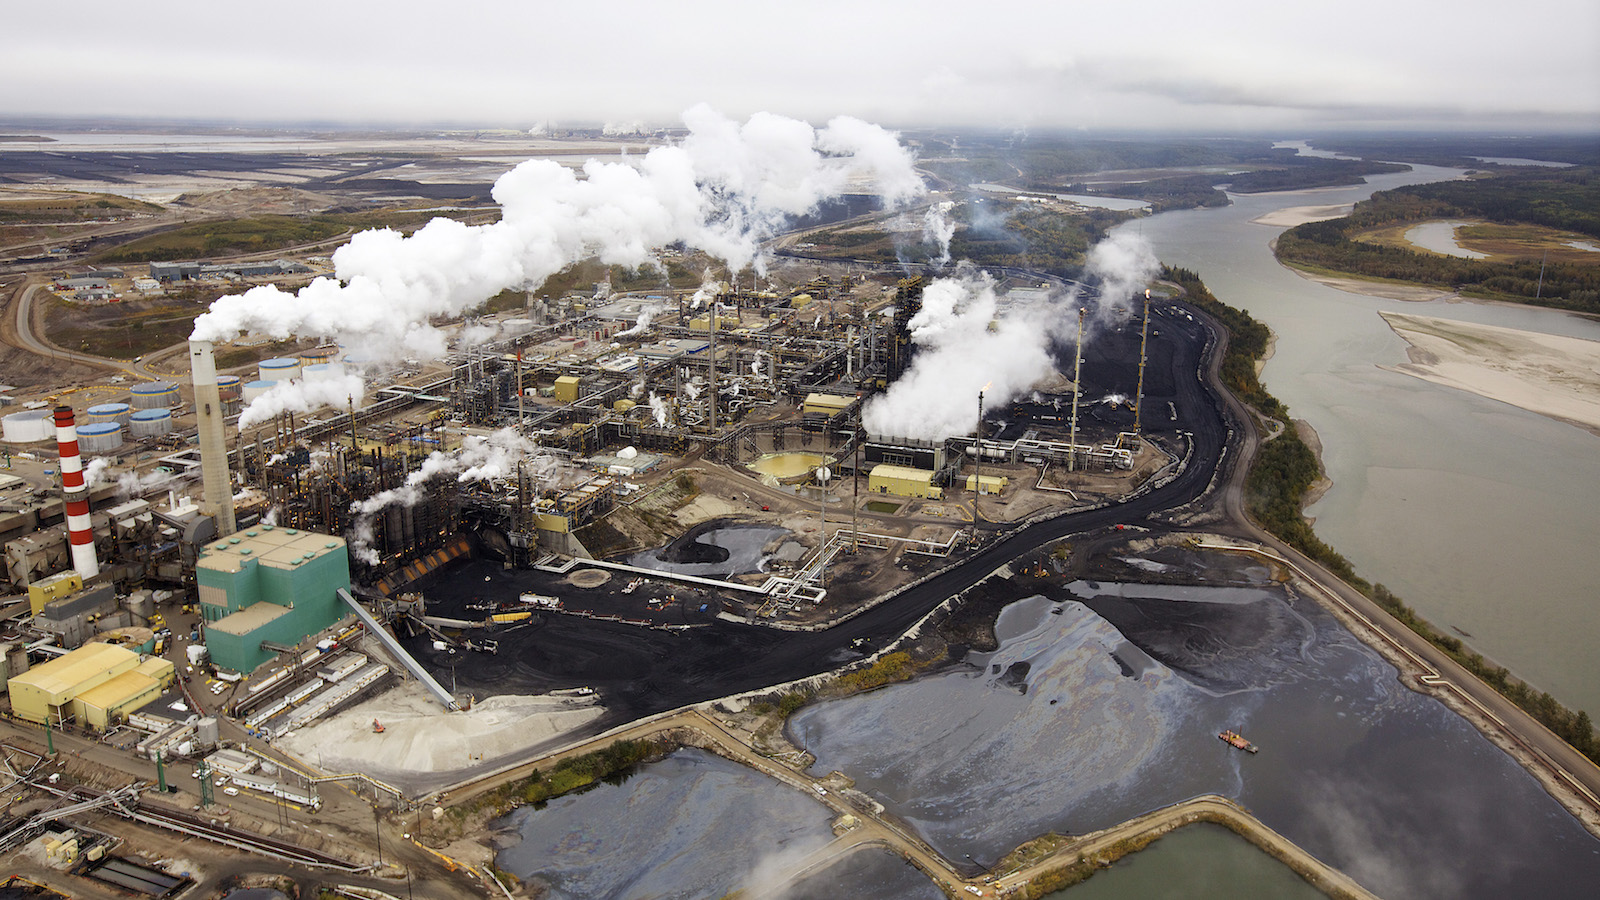 The Suncor processing plant near the Athabasca River at their mining operations near Fort McMurray, Alberta, September 17, 2014. (Todd Korol / Reuters)